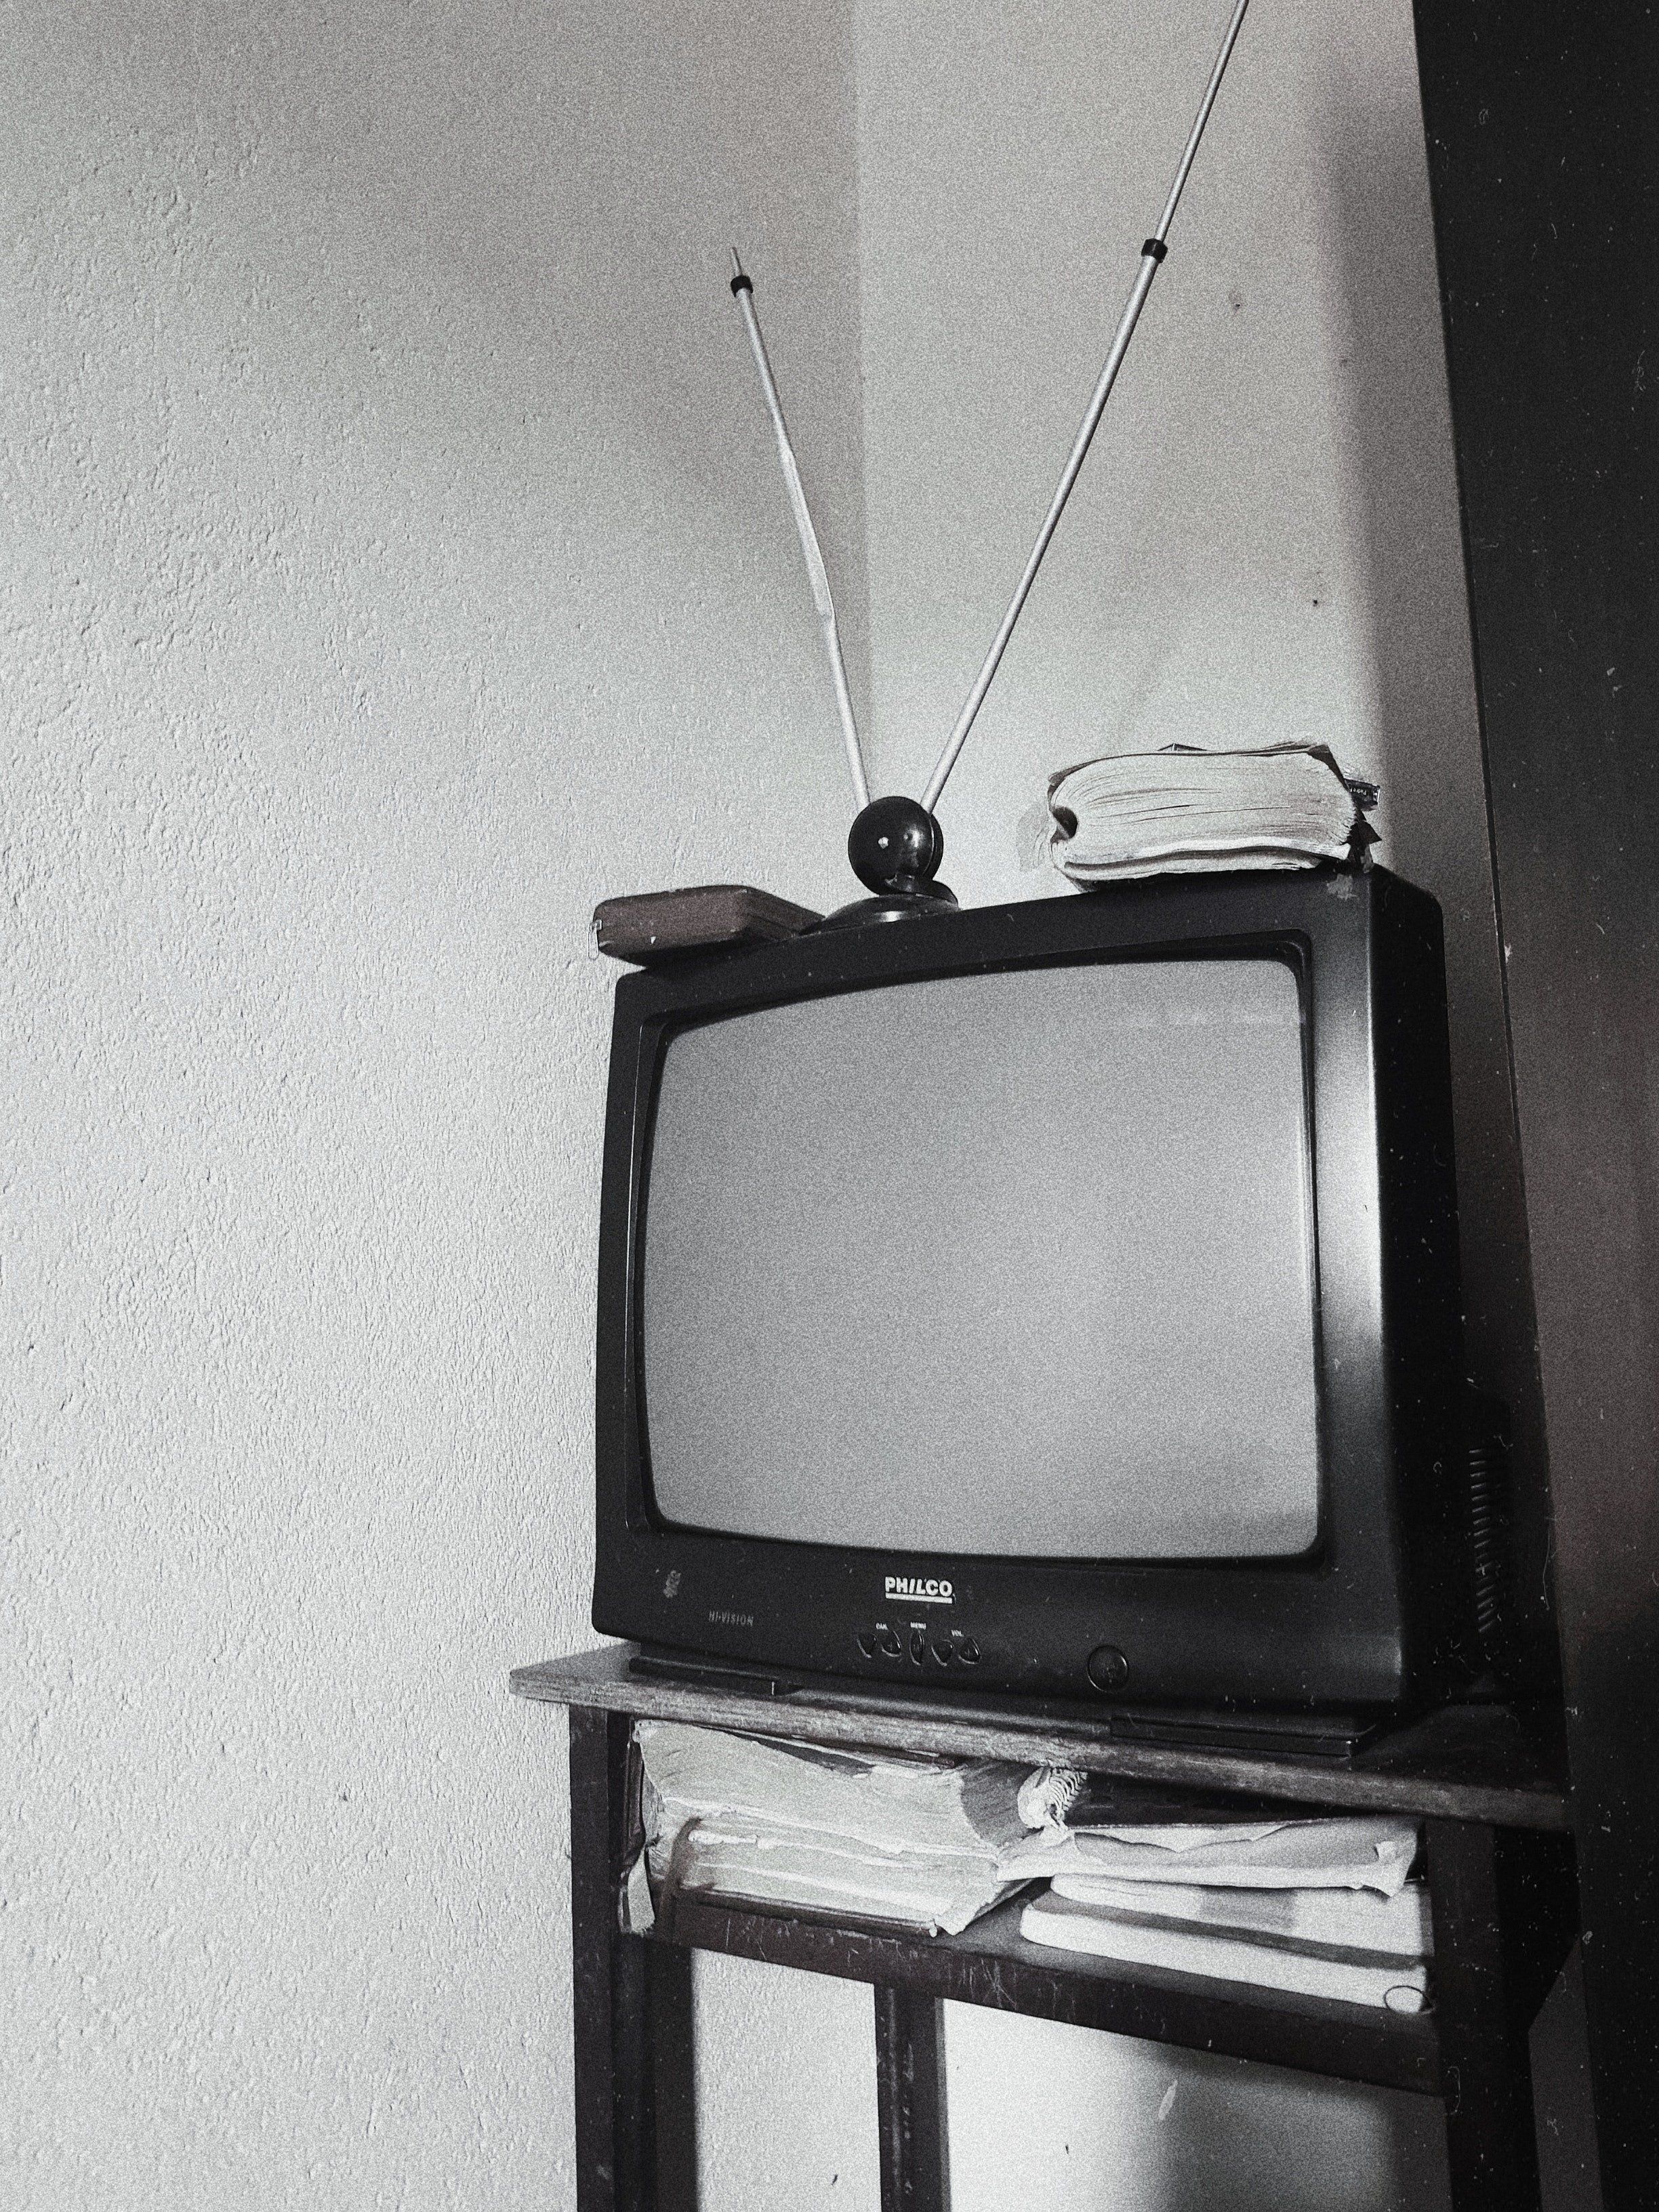 Olga decided to turn off the TV | Source: Pexels